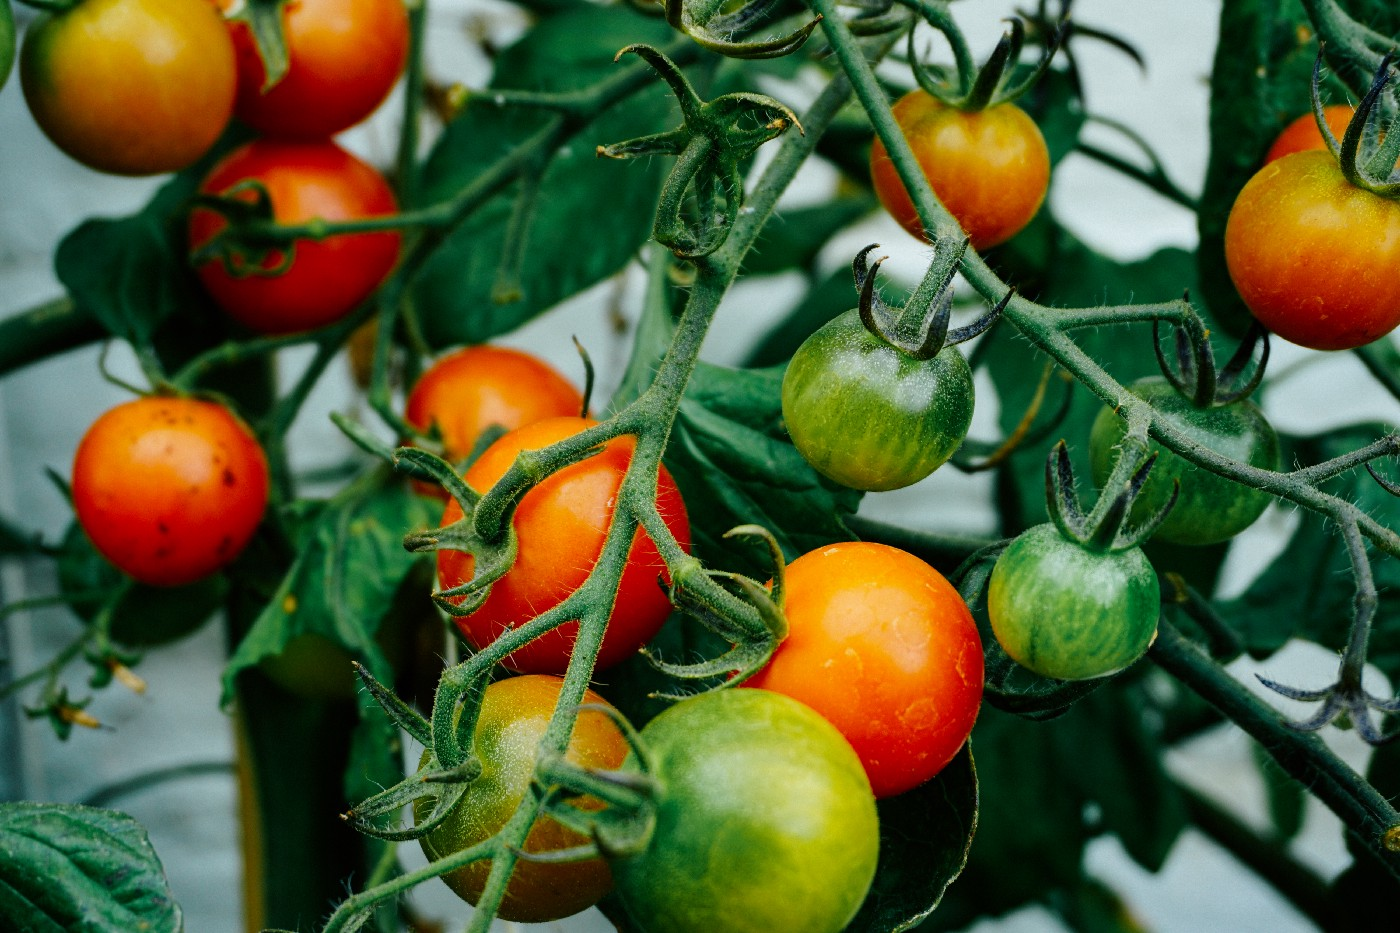 A close up of tomato plant with many green and red tomatoes hanging.